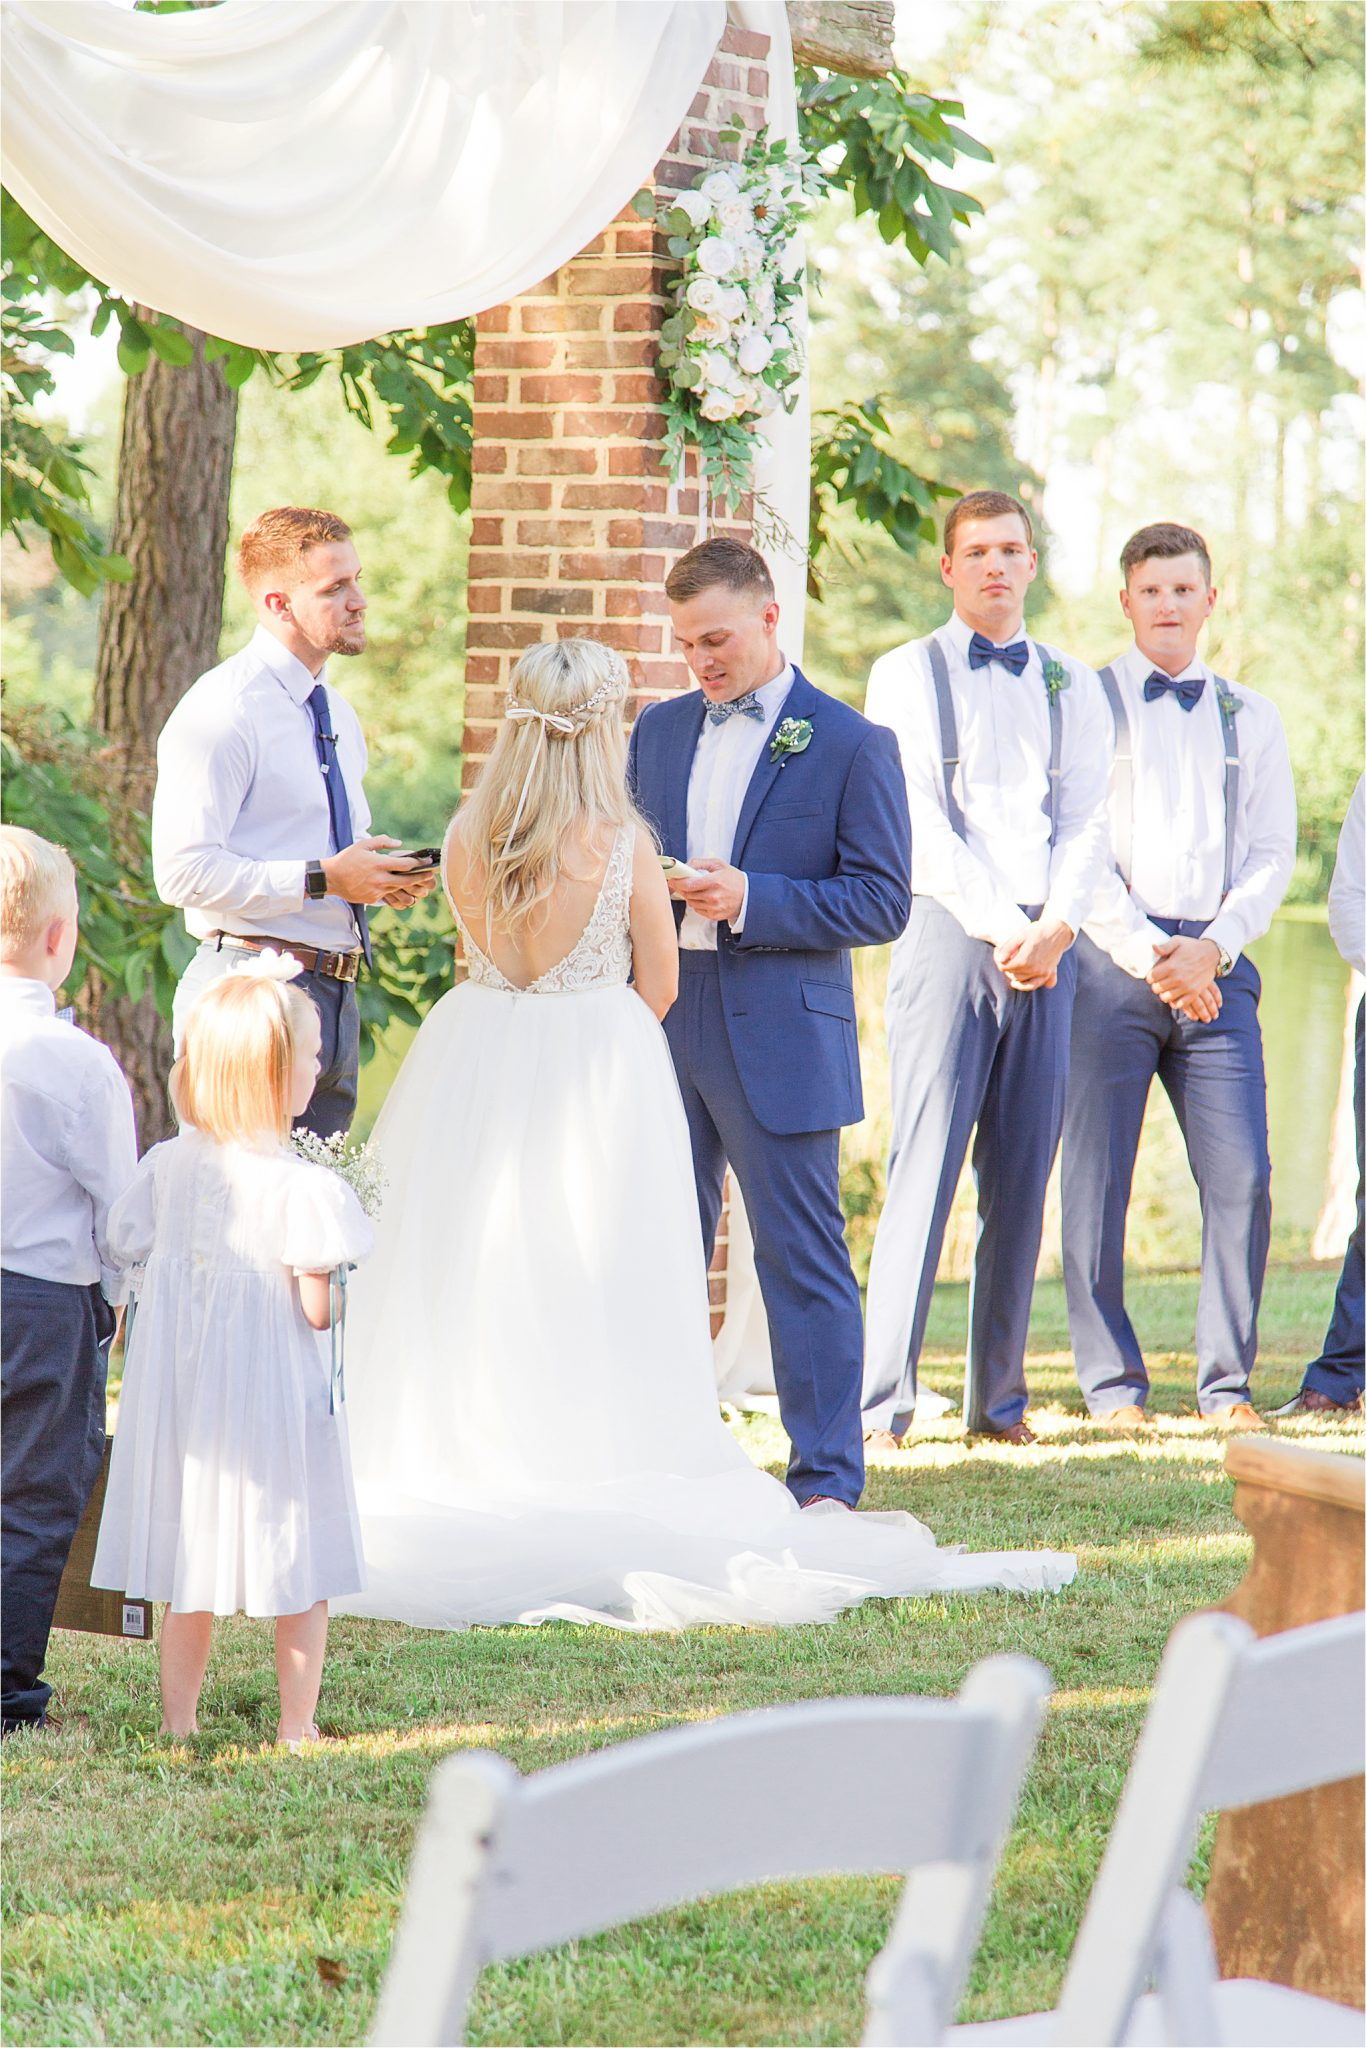 wedding-ceremony-alabama-wedding-photographer-blue-navy-vows